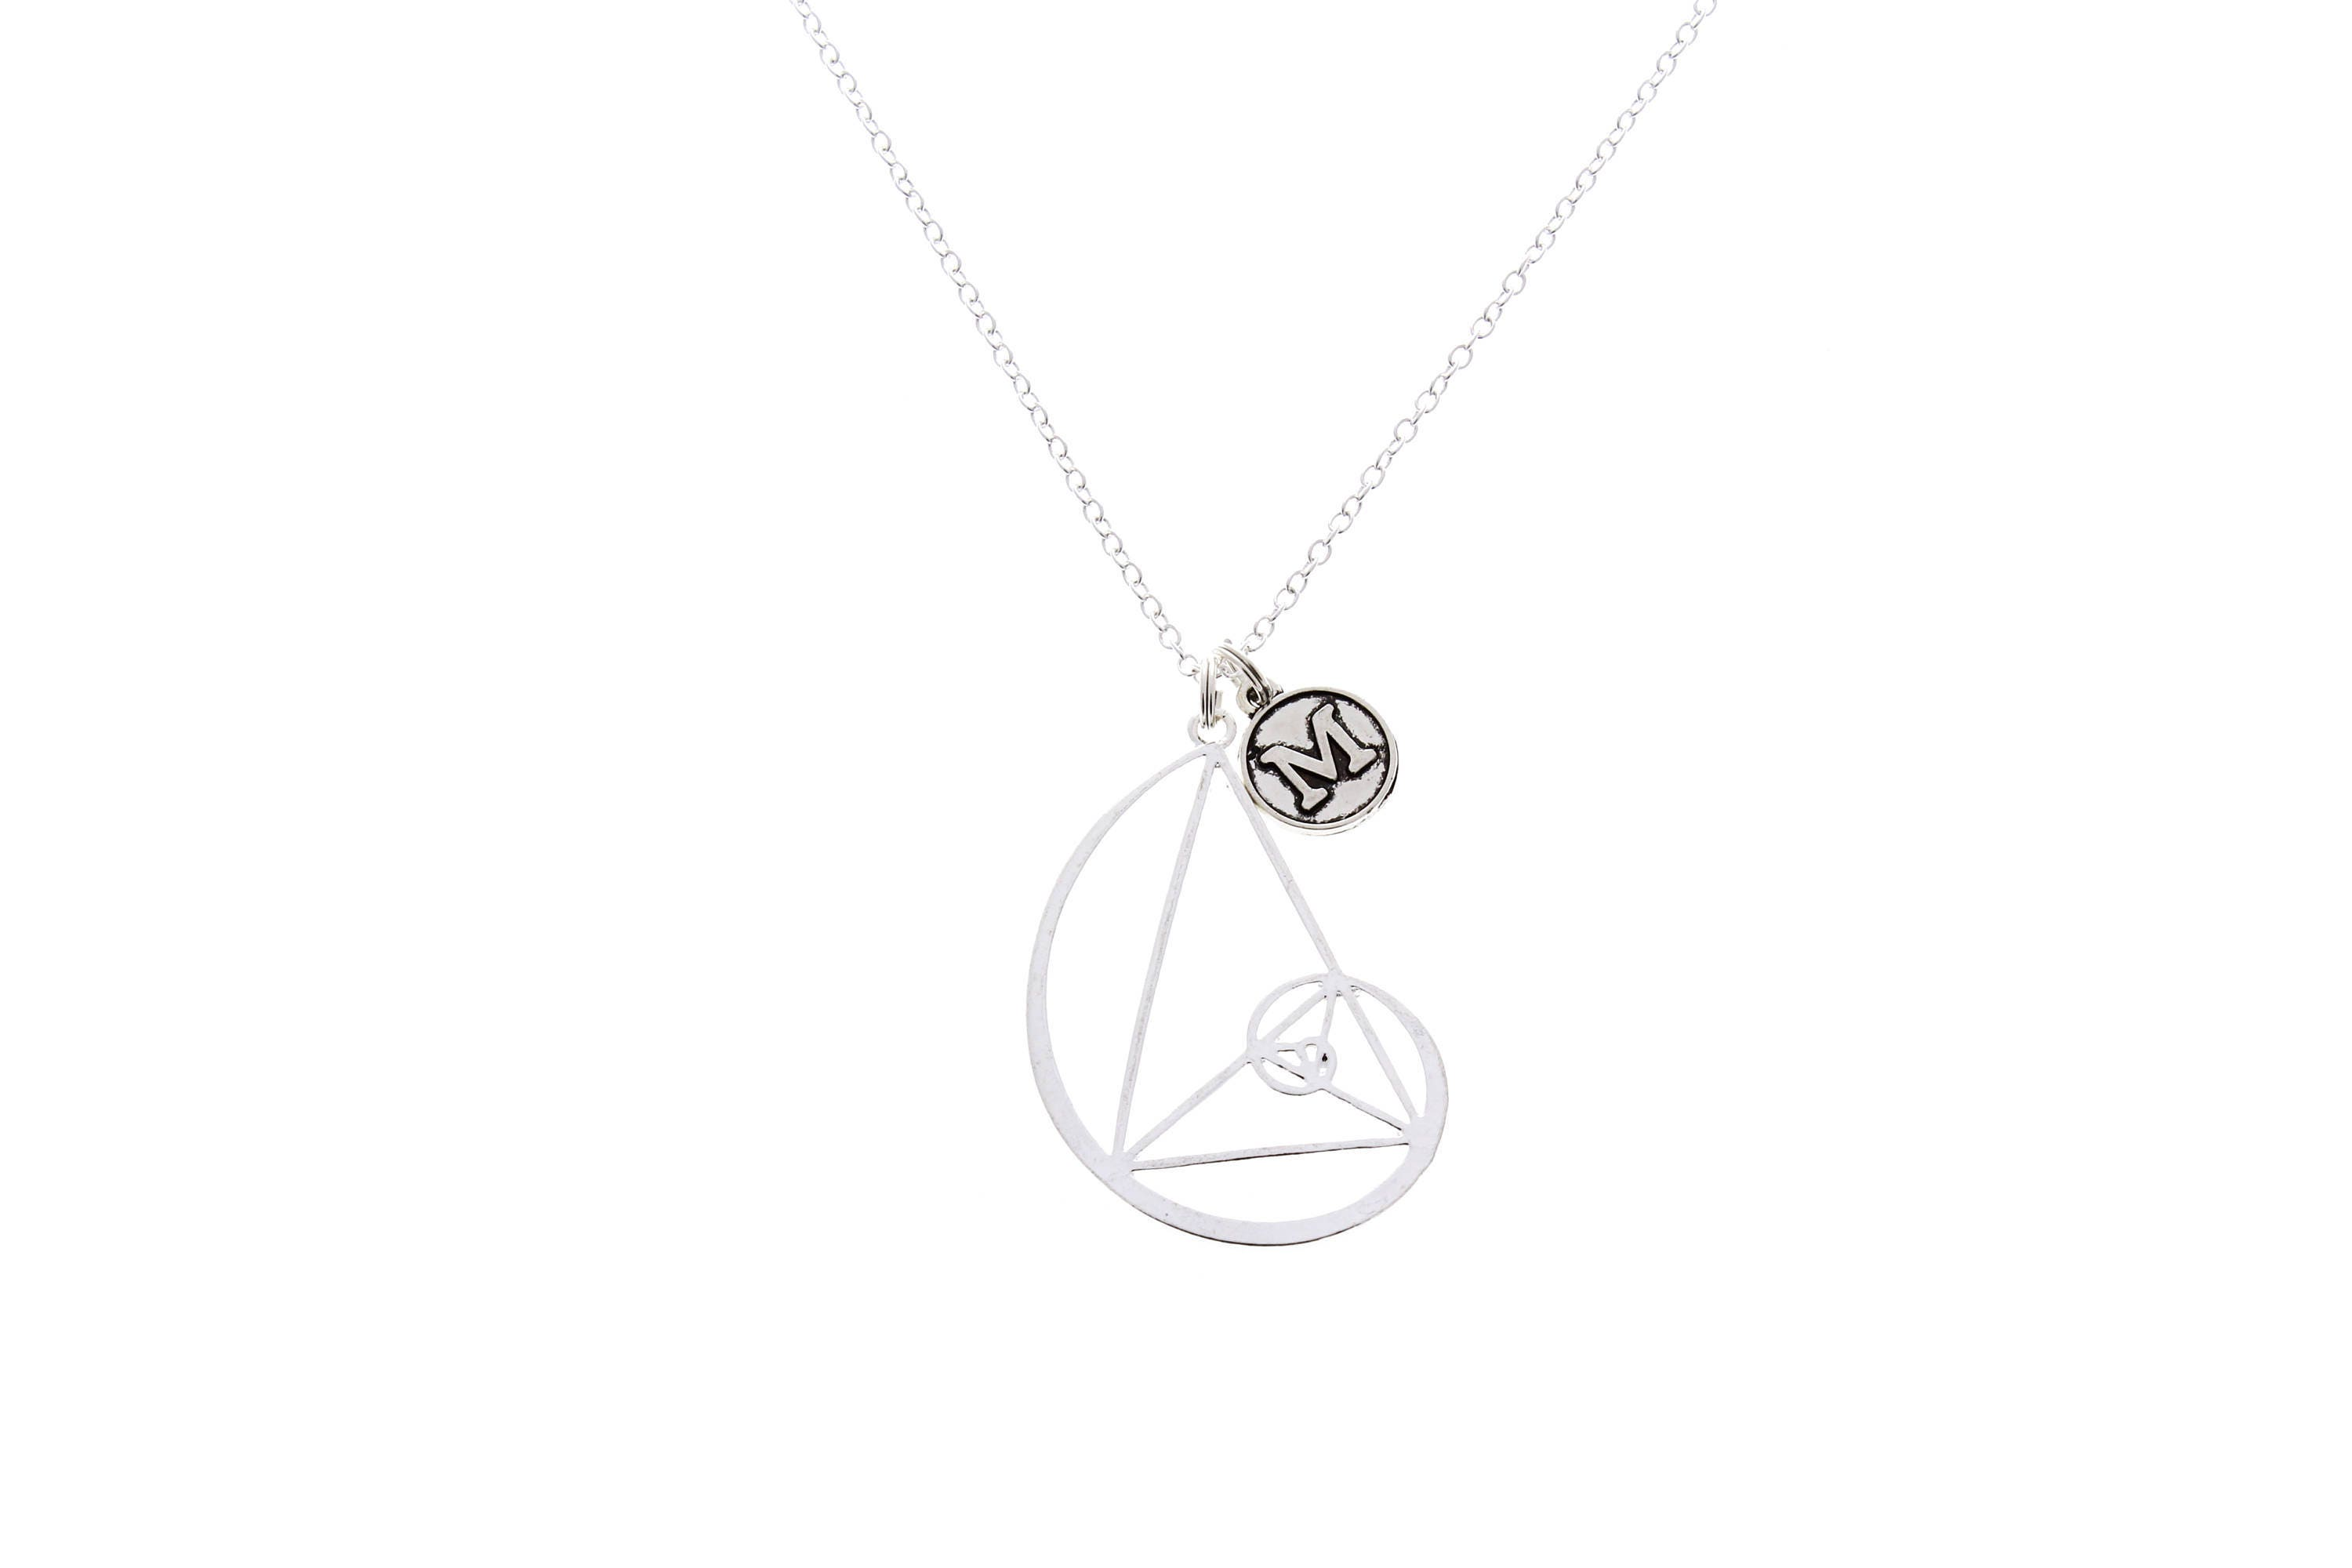 necklace hangs products a from golden beautifully silver ratio image on interlinked sacred geometry sterling chain with symbols handcrafted